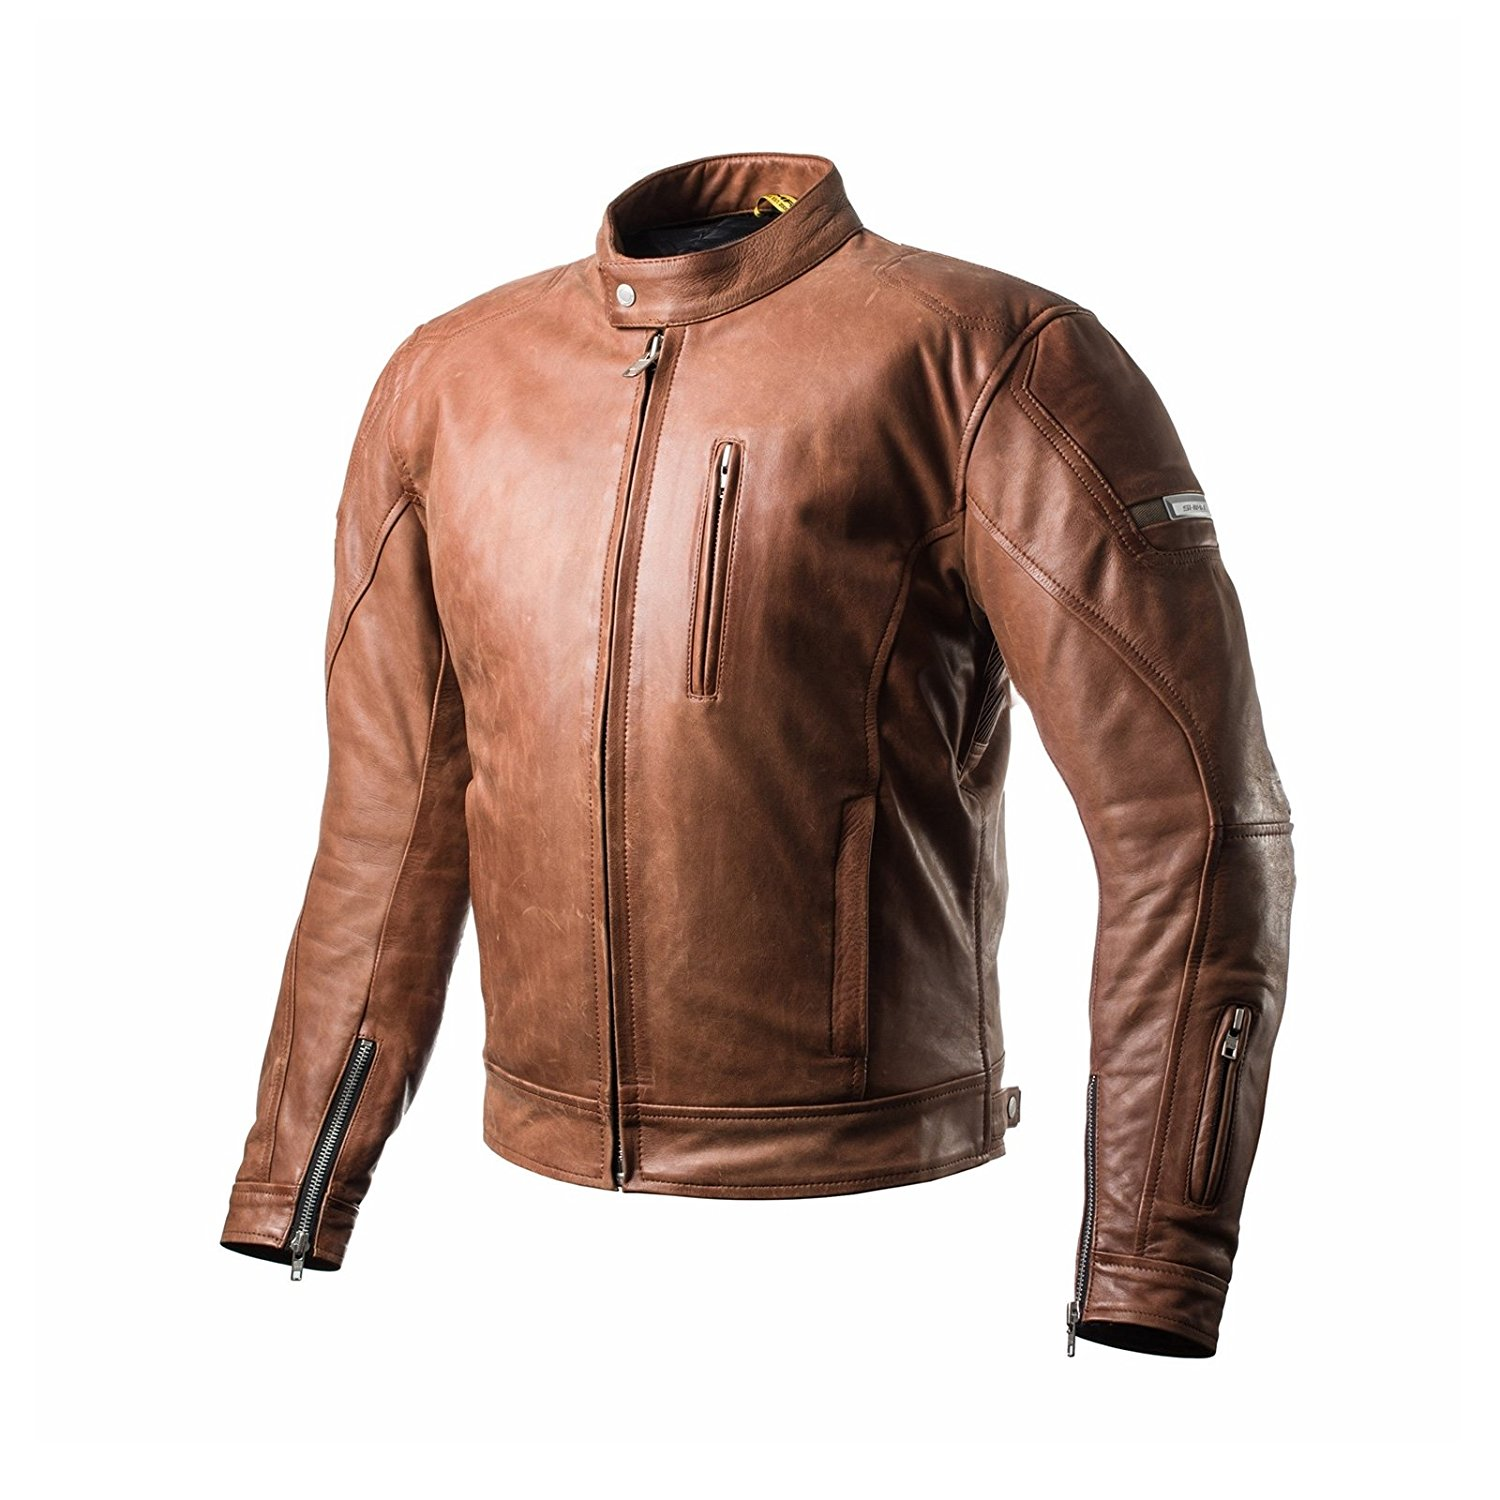 SHIMA HUNTER, Back Protector Summer Vintage Retro Mens Leather Motorcycle Jacket, Brown (S-XXL) (M, BROWN)